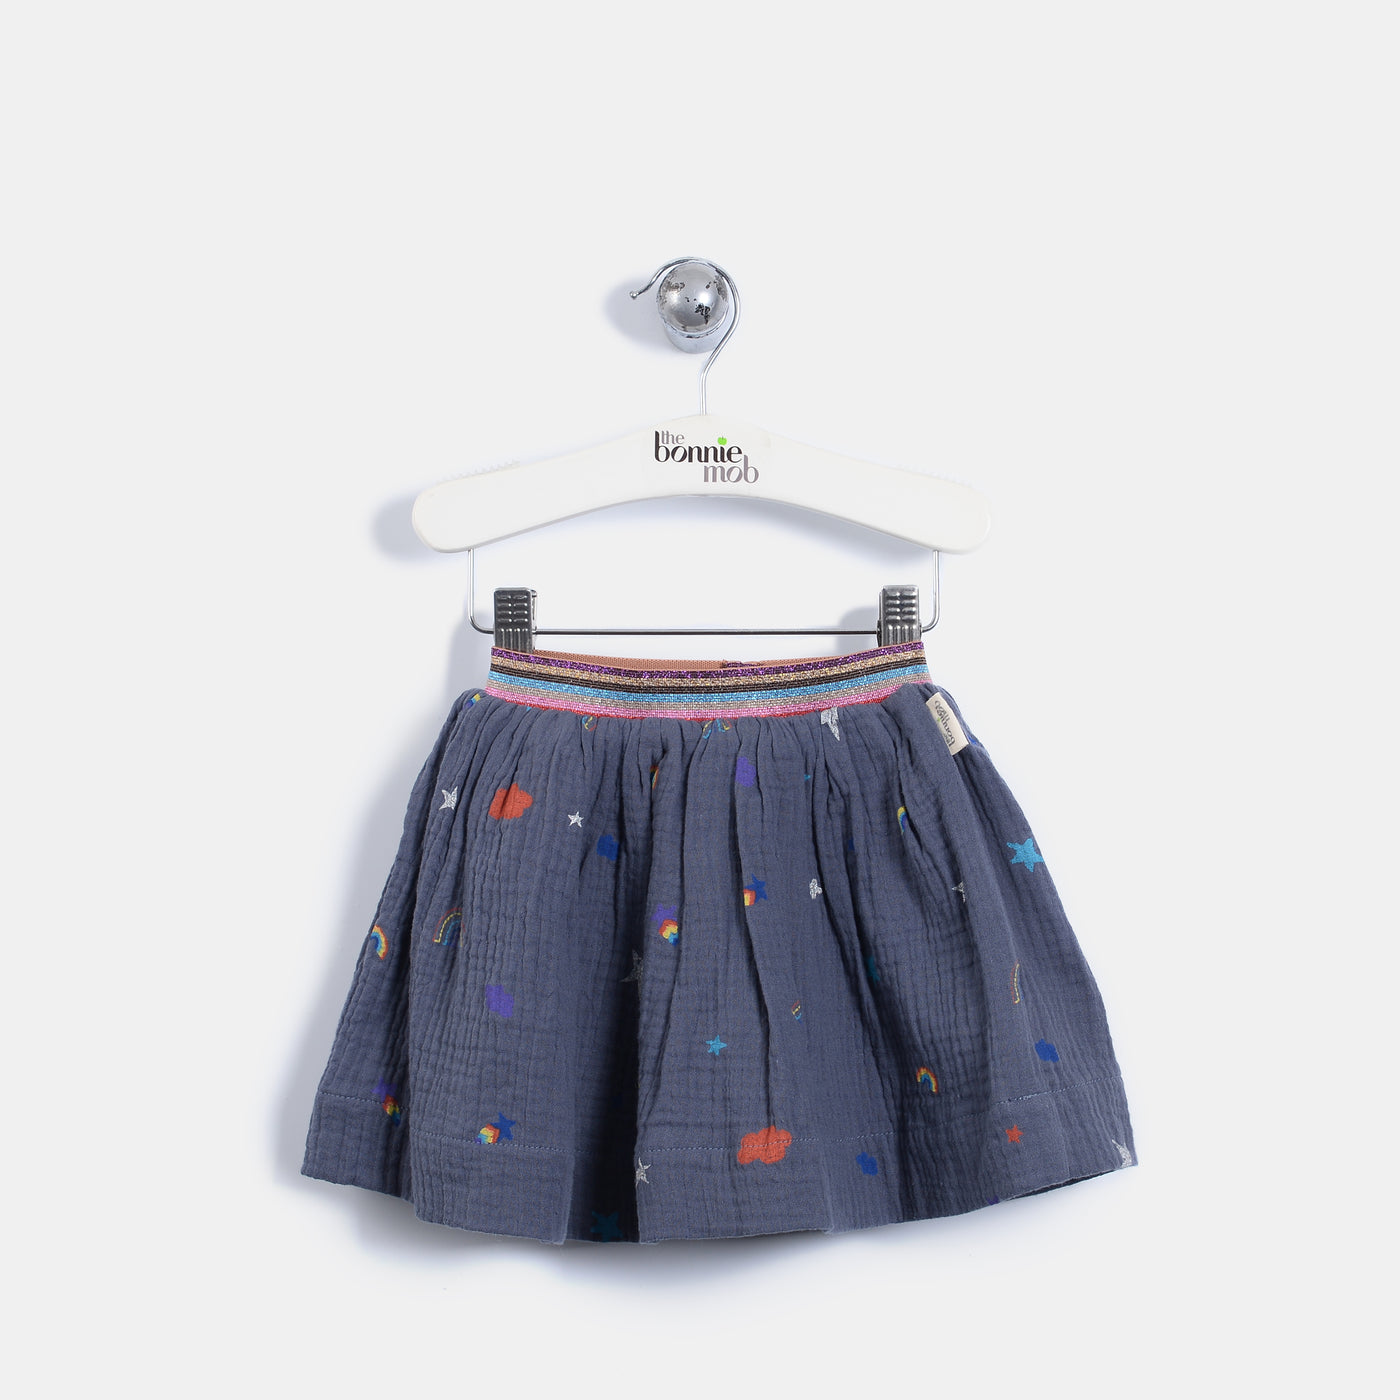 L-BRIELLE - Rainbow And Star Print Skirt